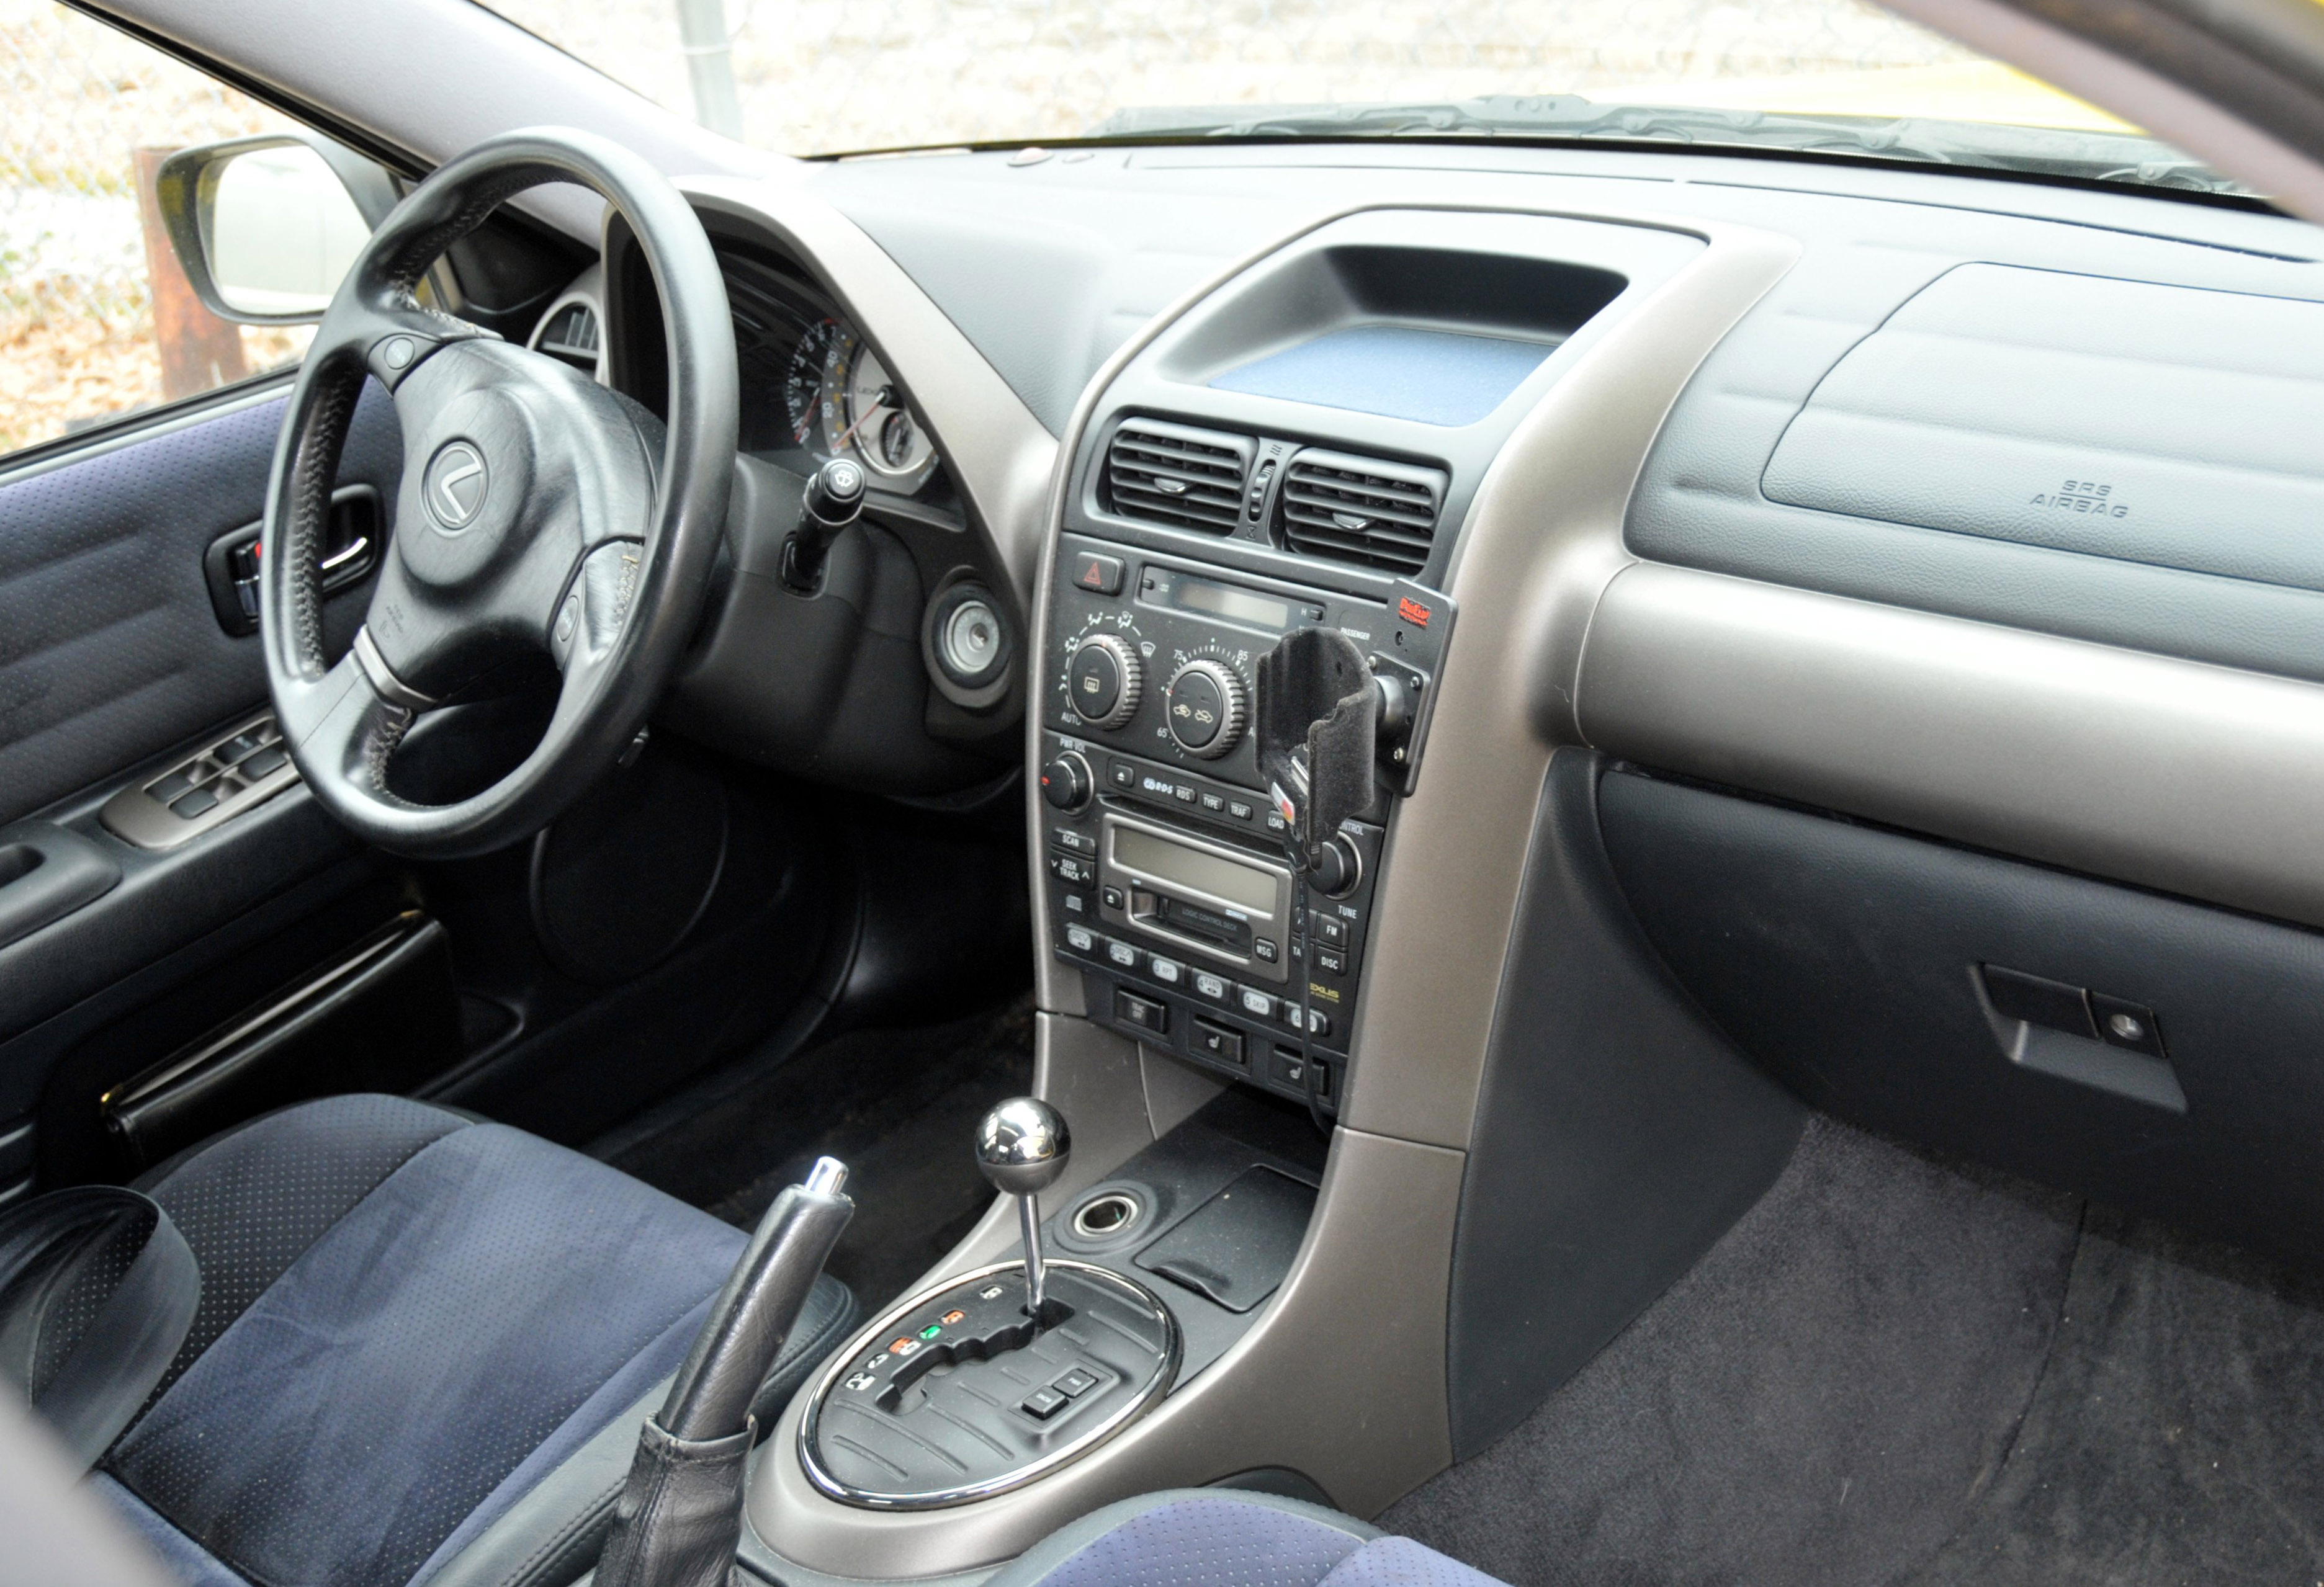 2005 Lexus IS 300 Information and photos ZombieDrive